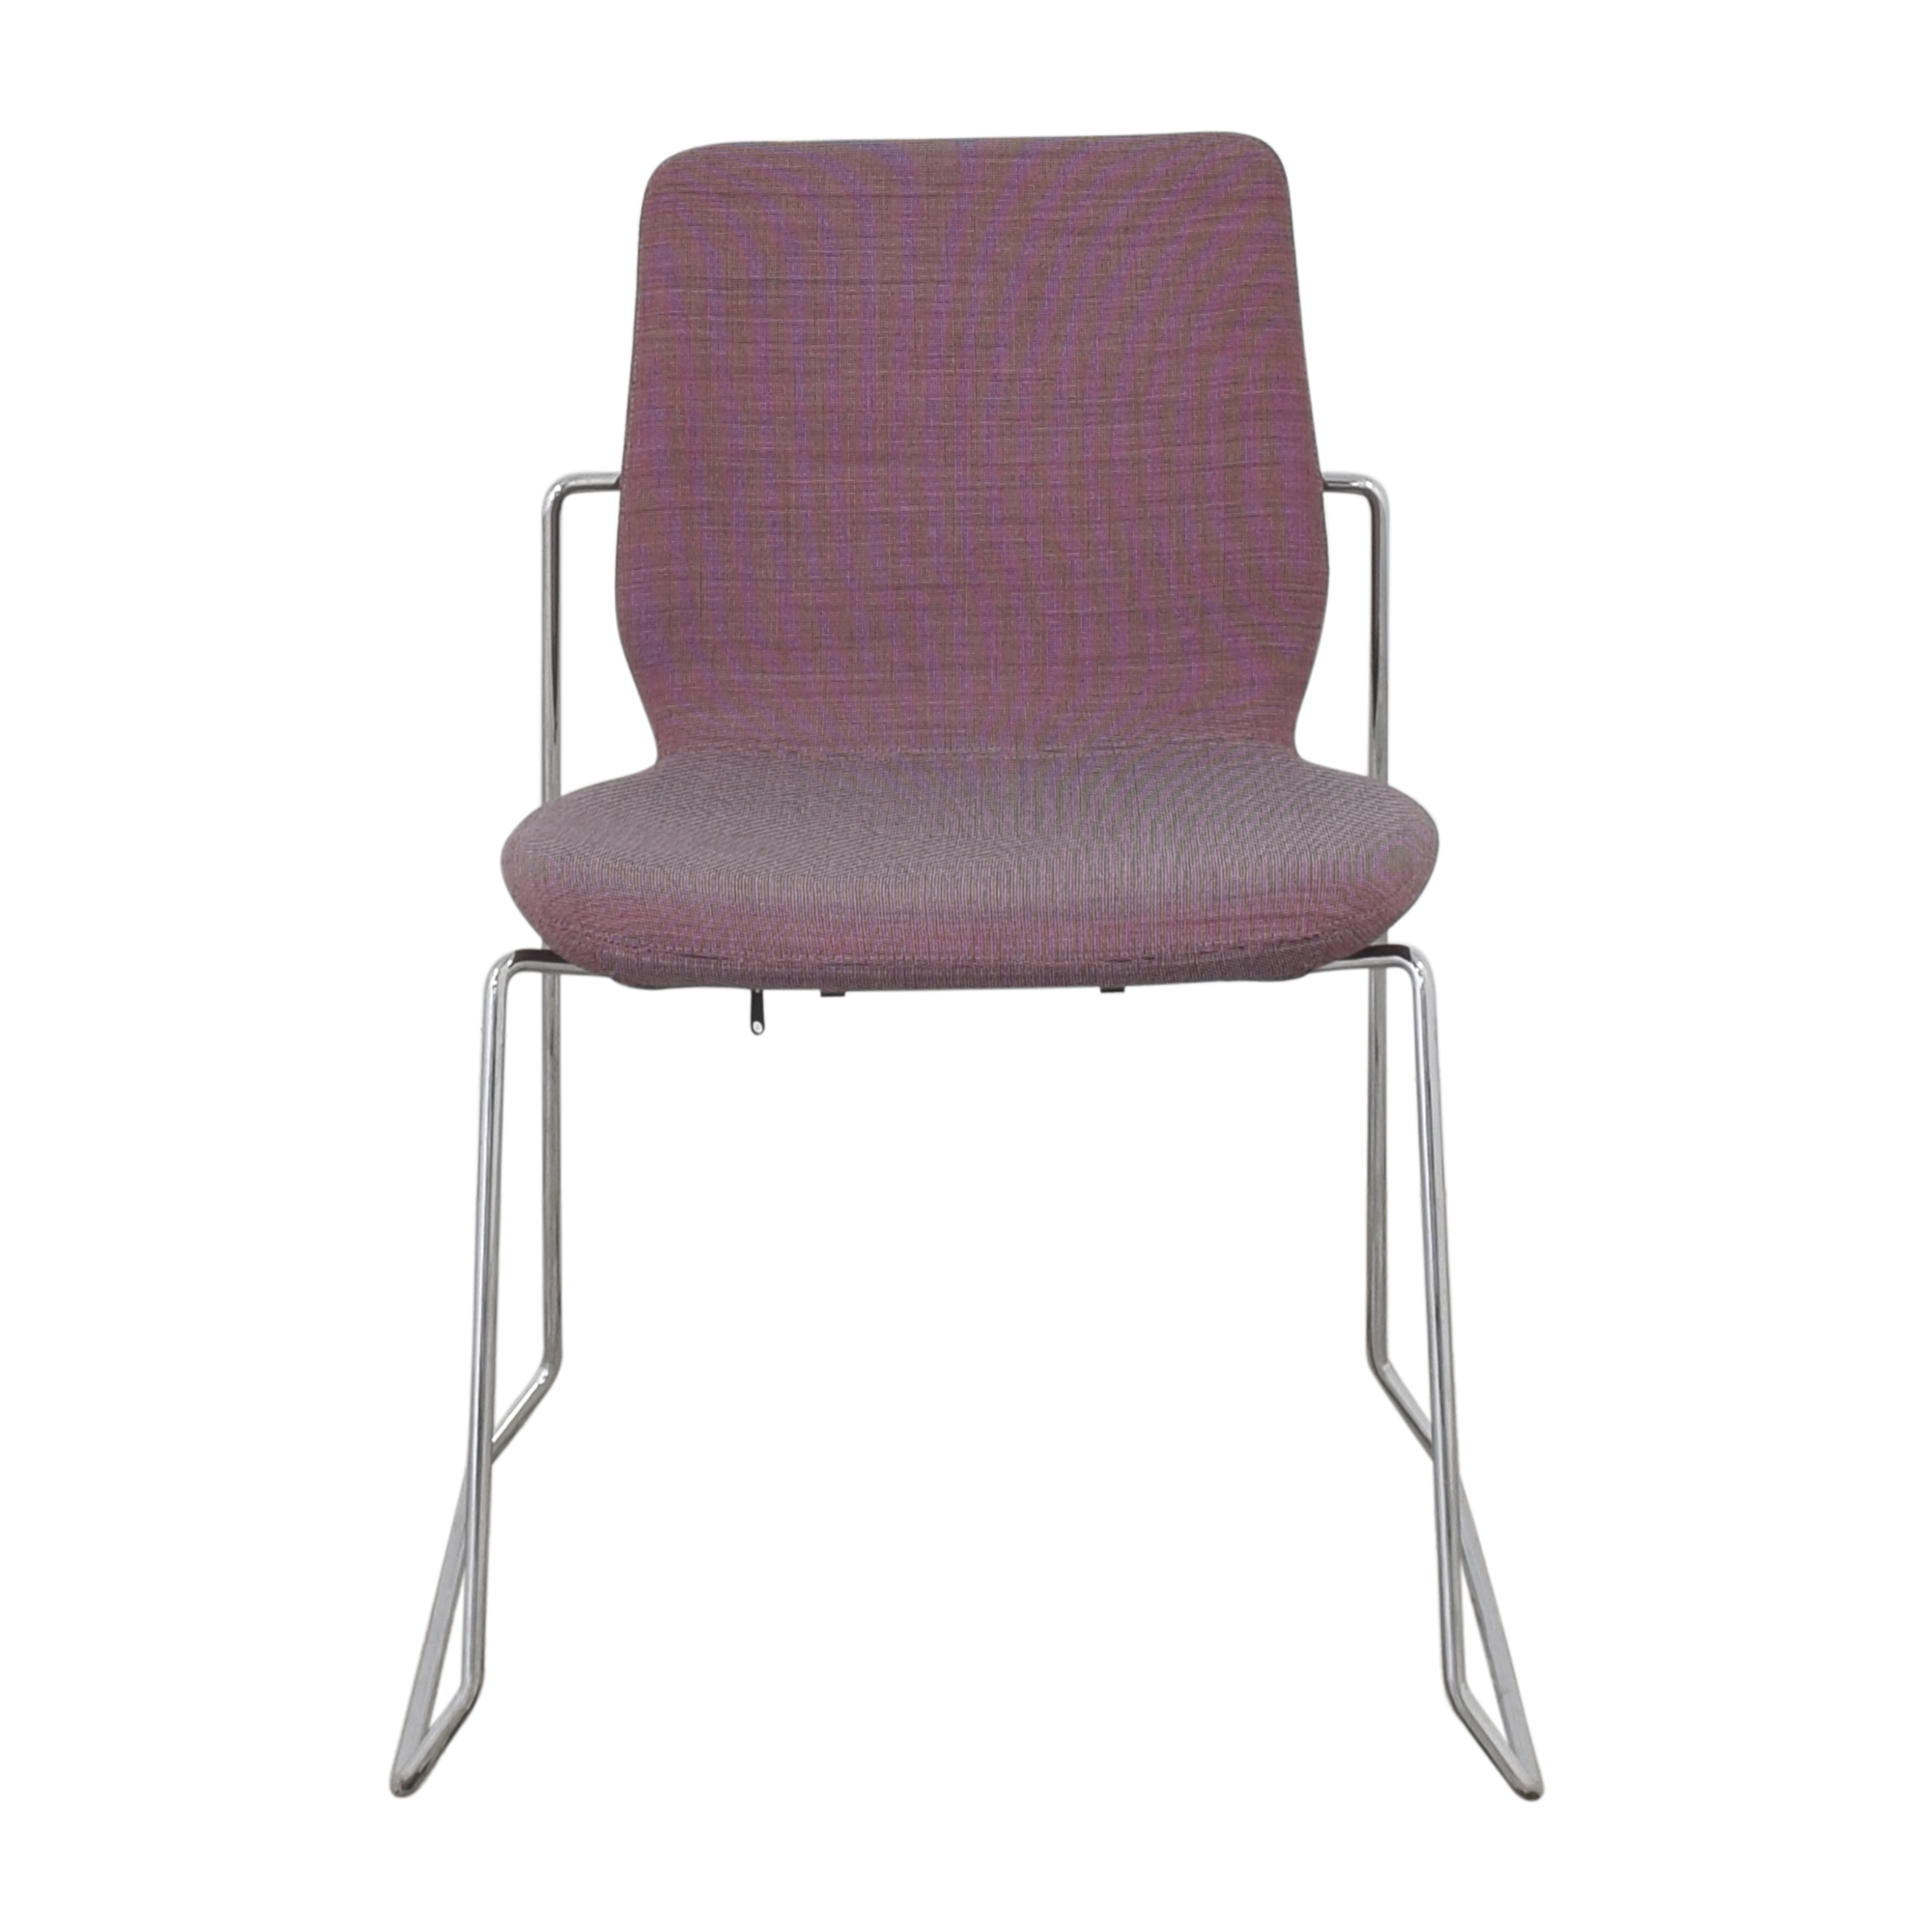 shop Koleksiyon Asanda Armless Chair Koleksiyon Chairs